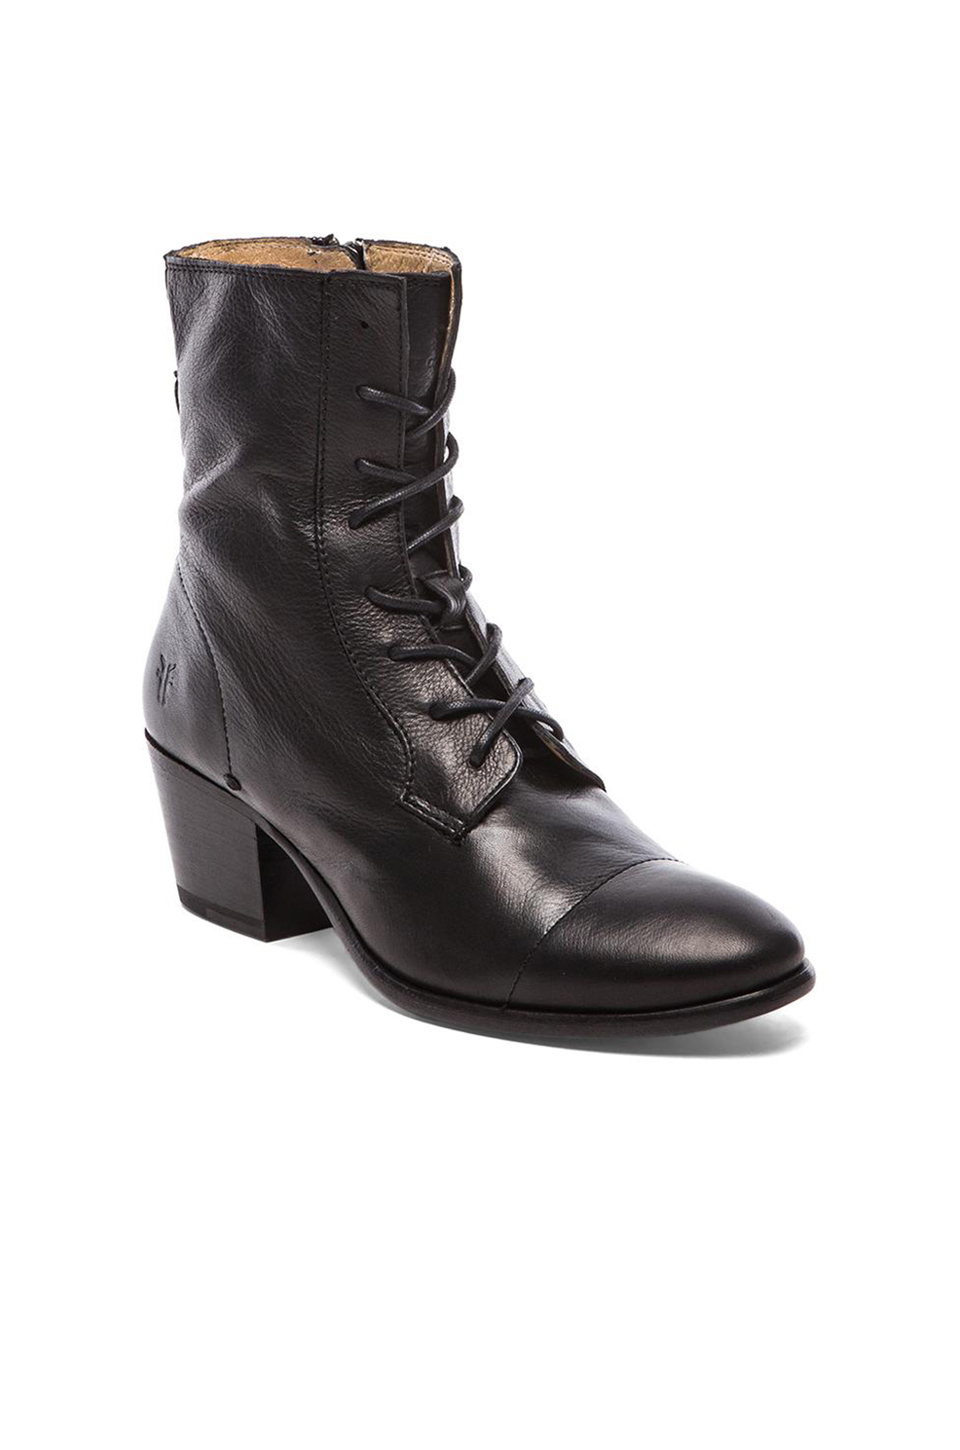 Frye Leather Courtney Lace Up Boot In Black Lyst